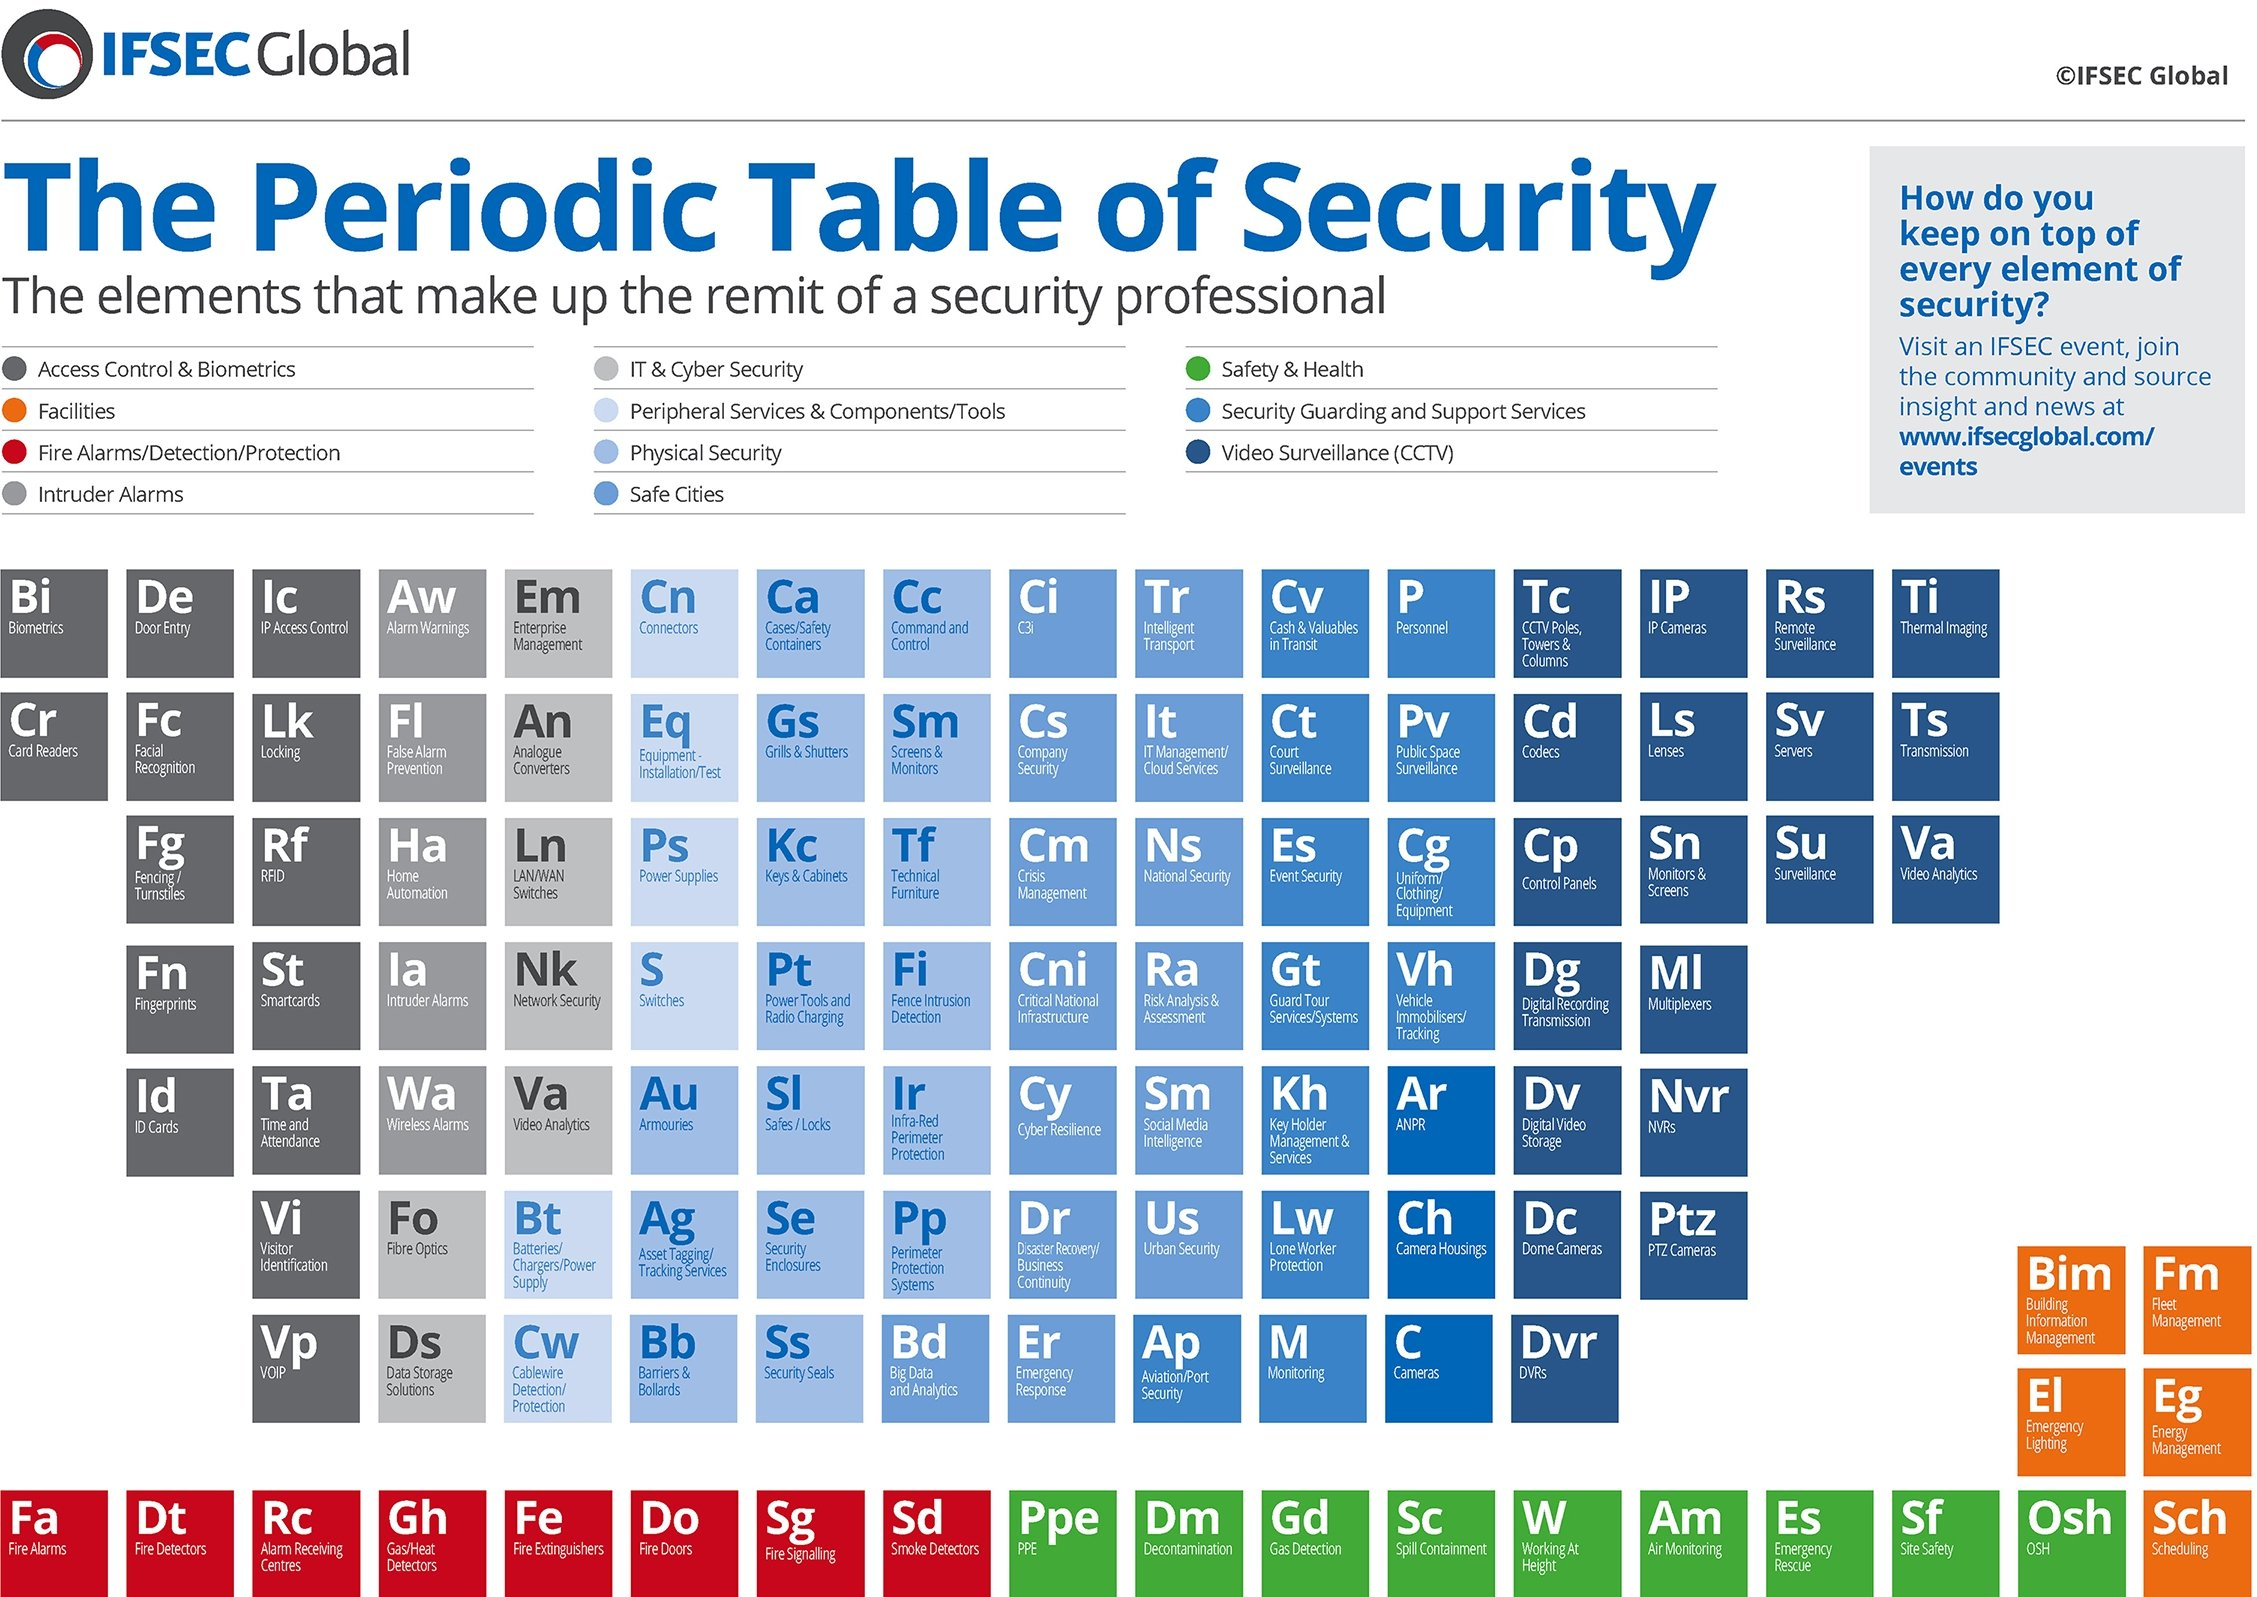 IFSEC Periodic Table of Security full size